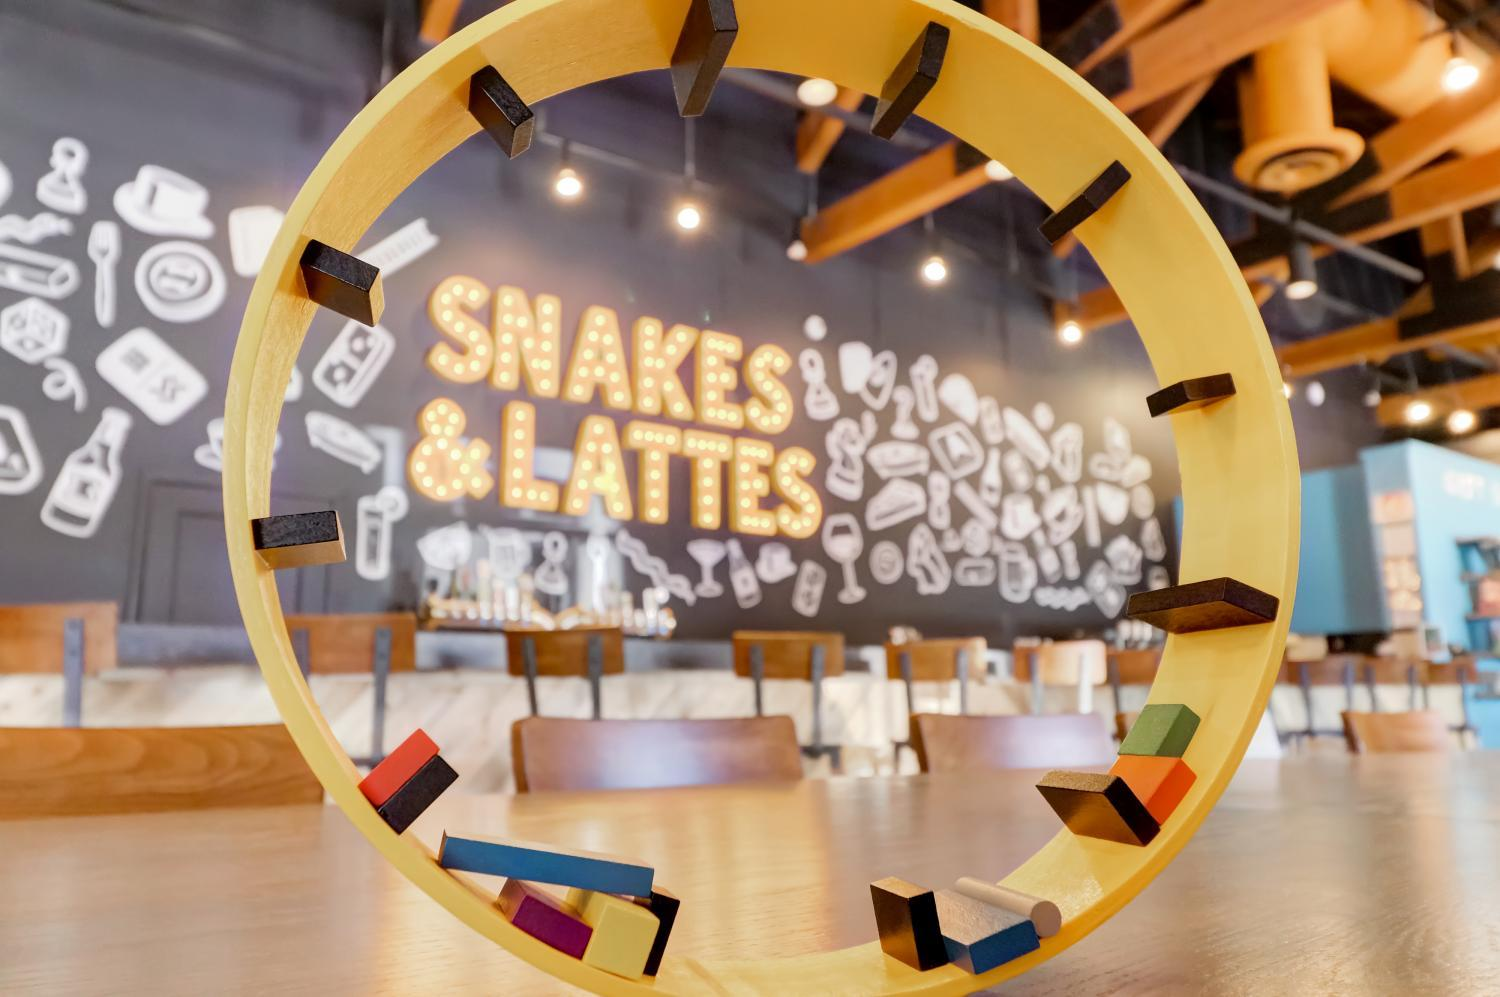 sign says snakes & lattes on wall surrounded by games and seats